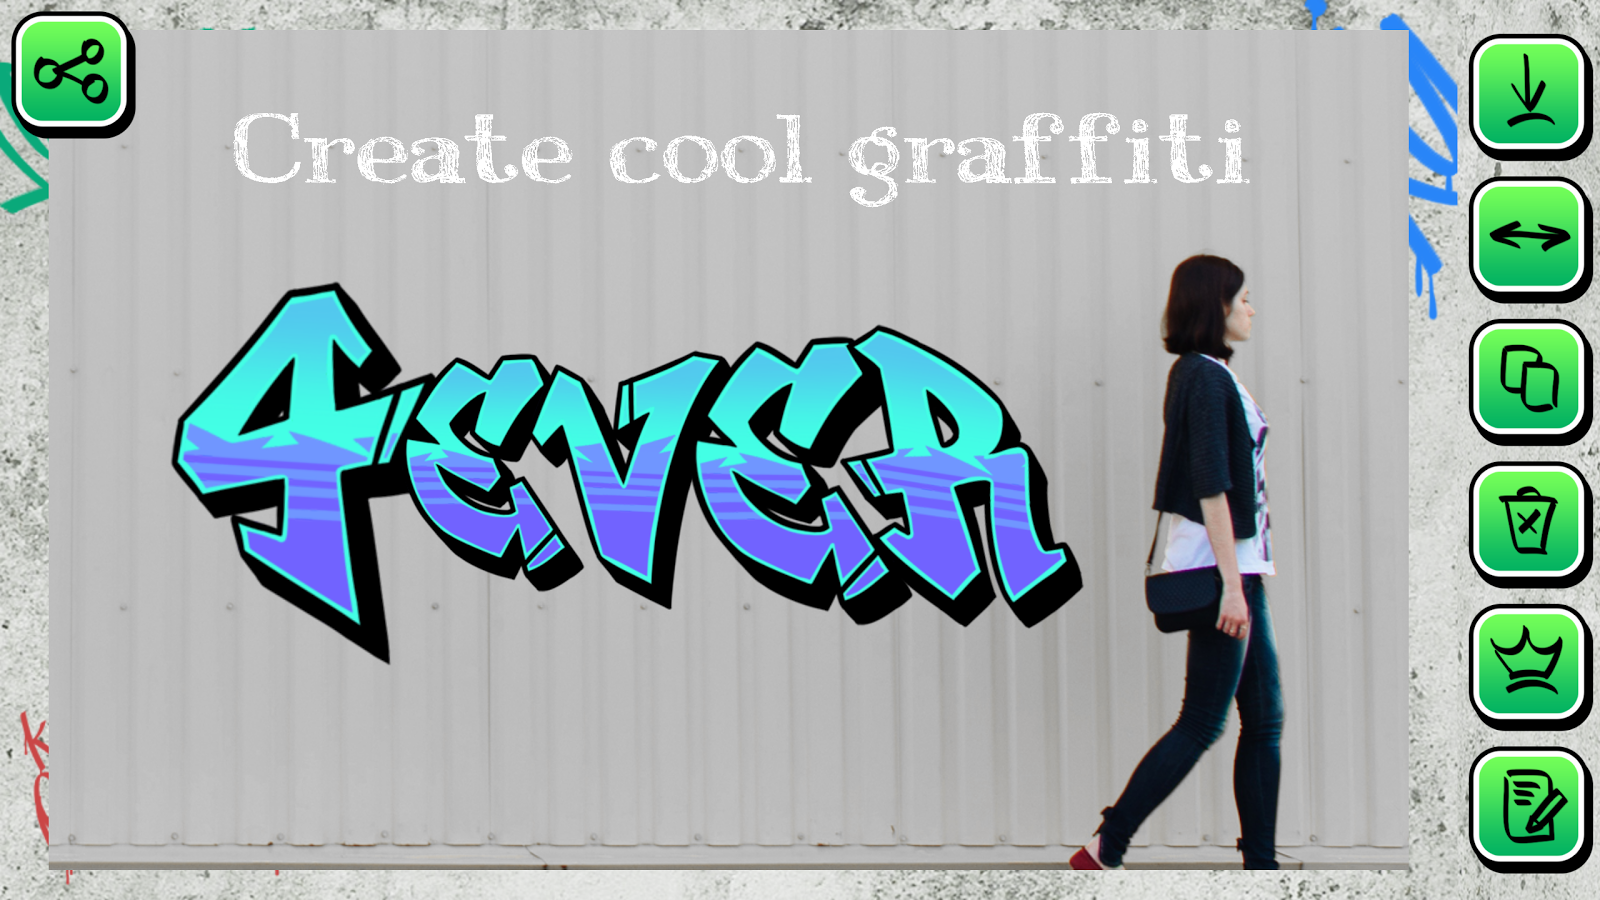 Graffiti creator phone - Graffiti Creator On Photo Text Screenshot